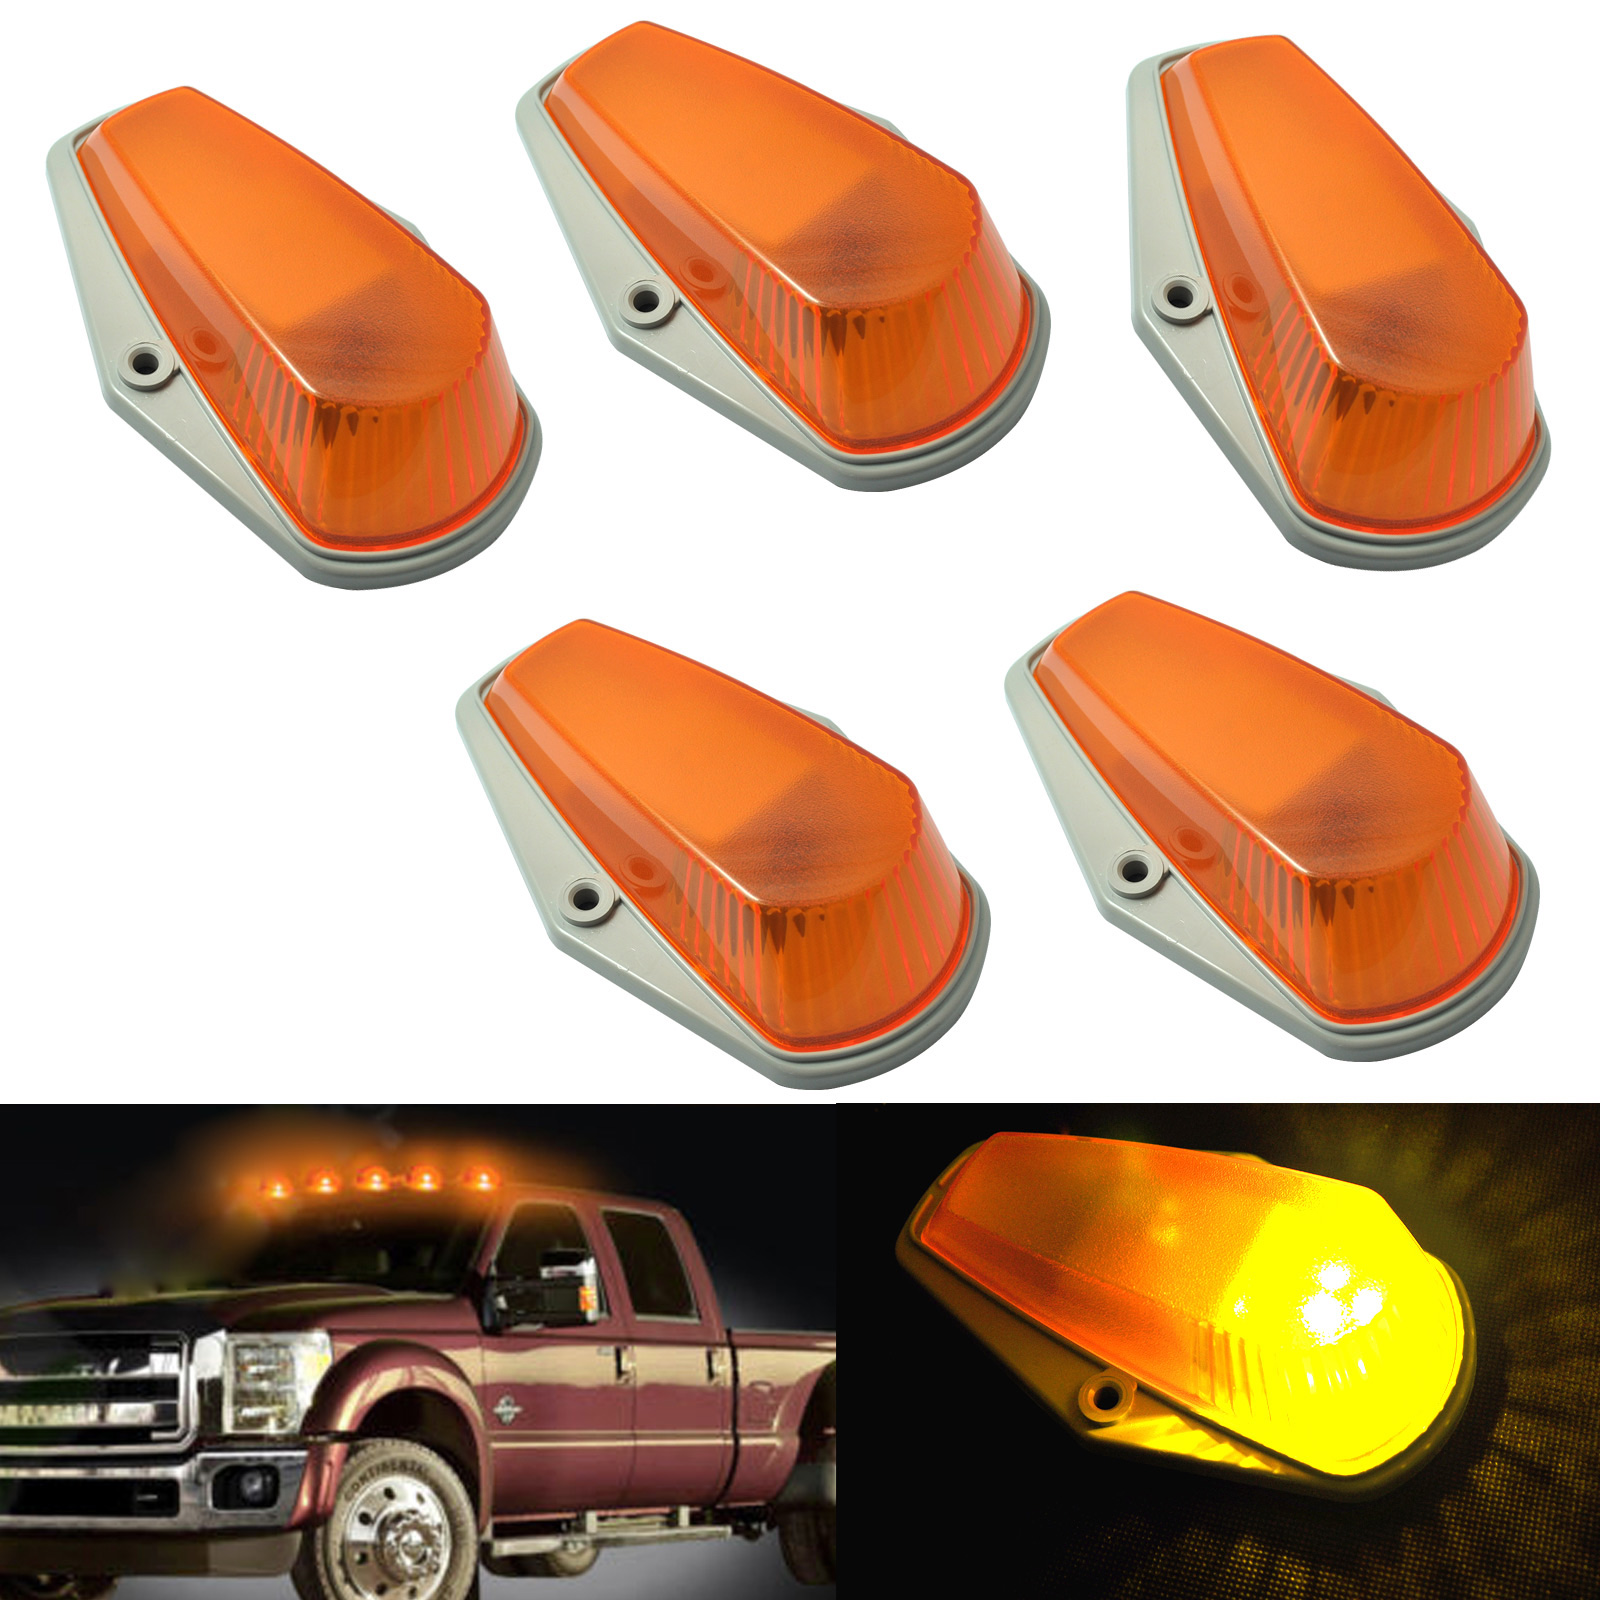 5 pcs Car Cab Roof Light Marker Amber Covers w/ Base Housing For Car 80-97 Ford F Super Duty XR657